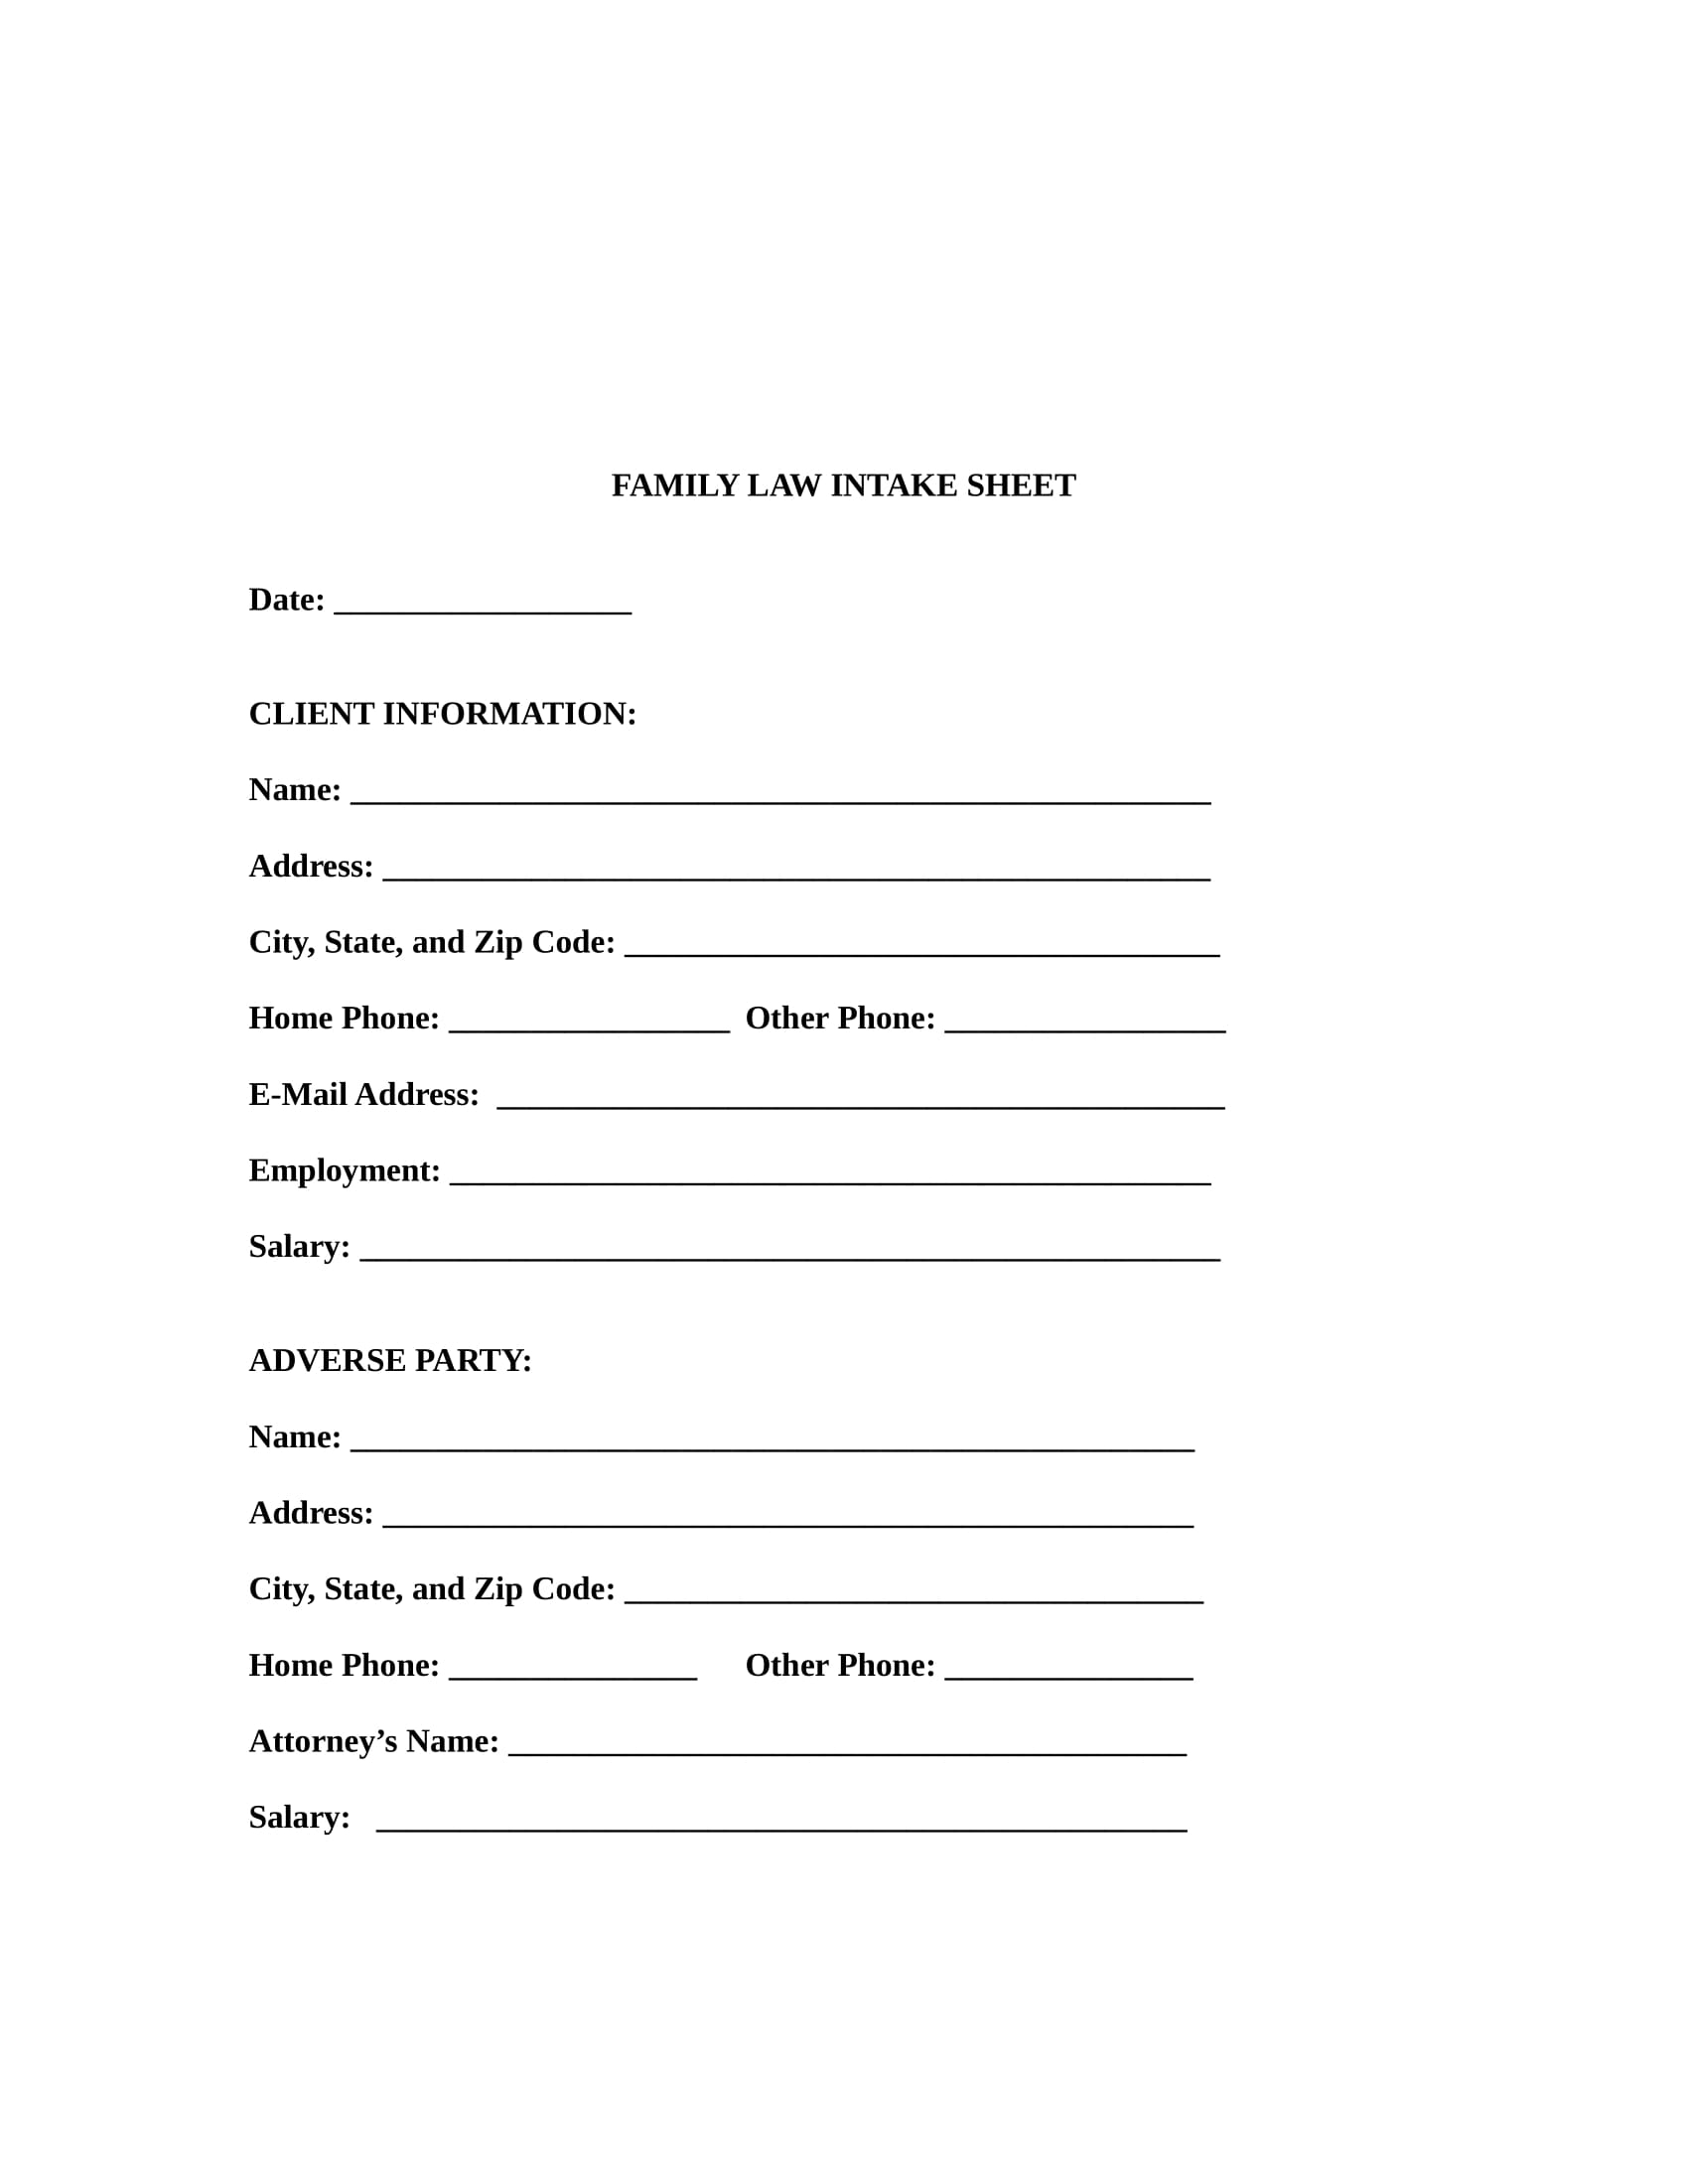 family law intake form in doc 1